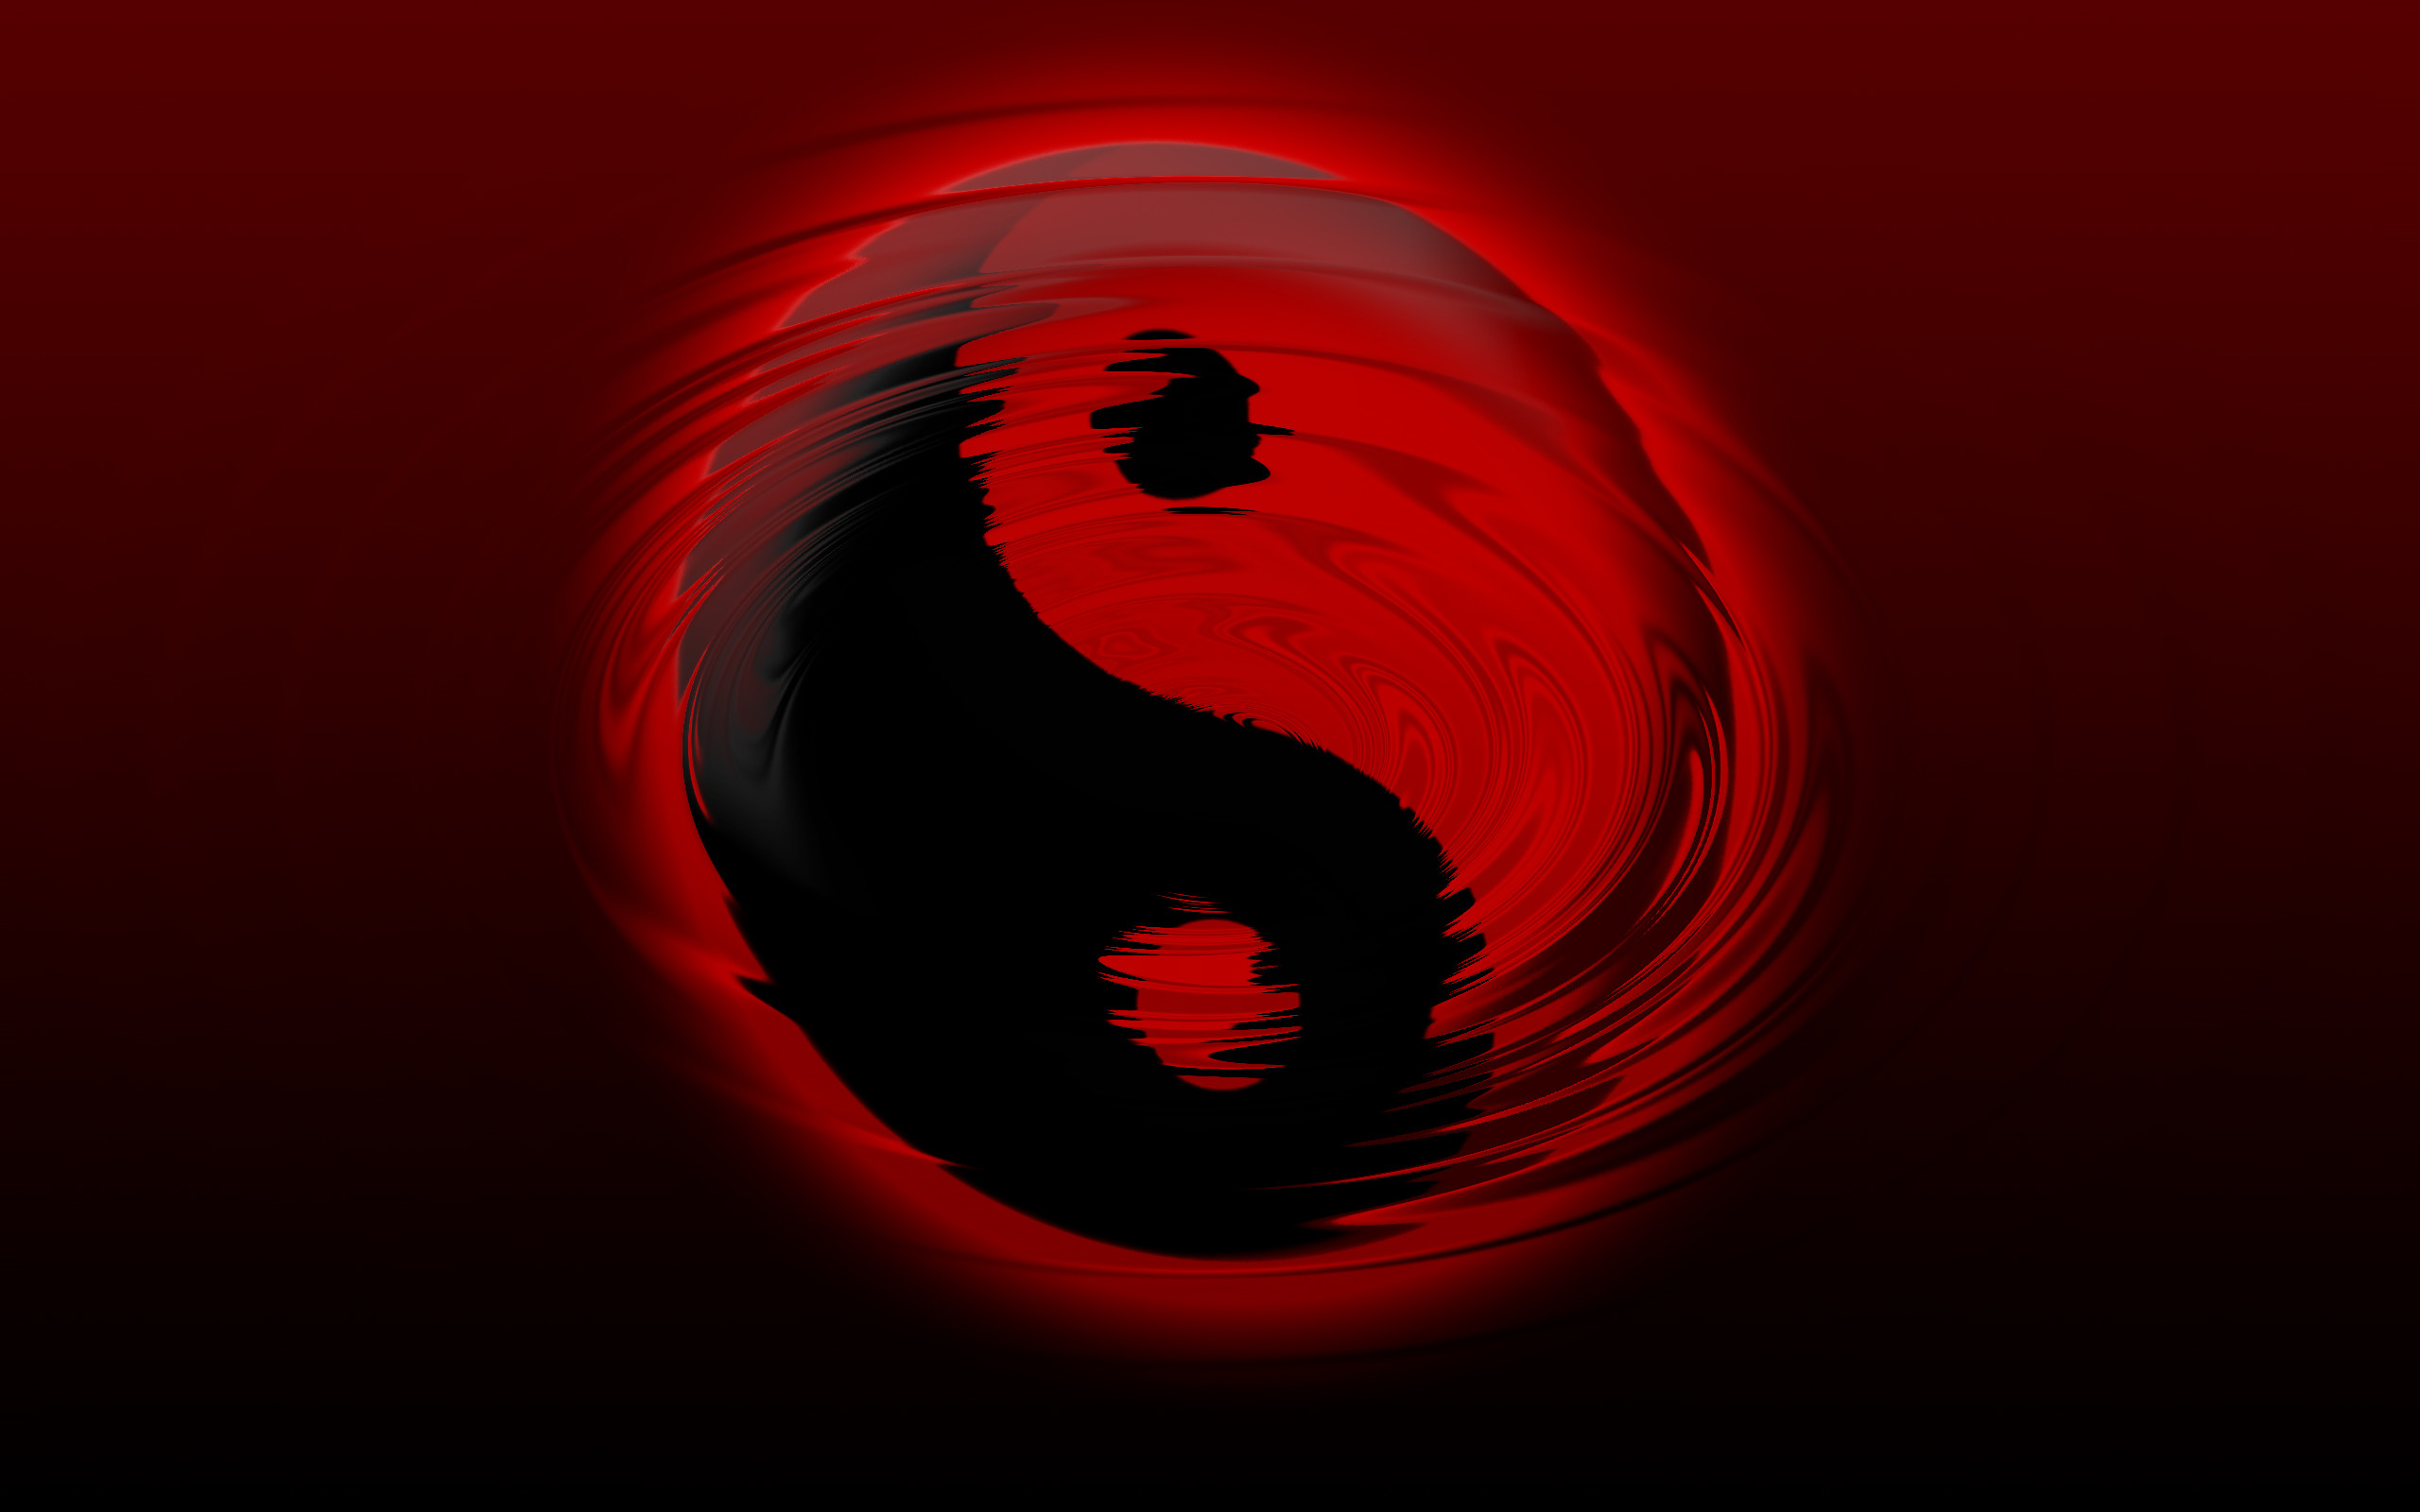 Black And Red >> Black And Red Wallpapers 74 Images